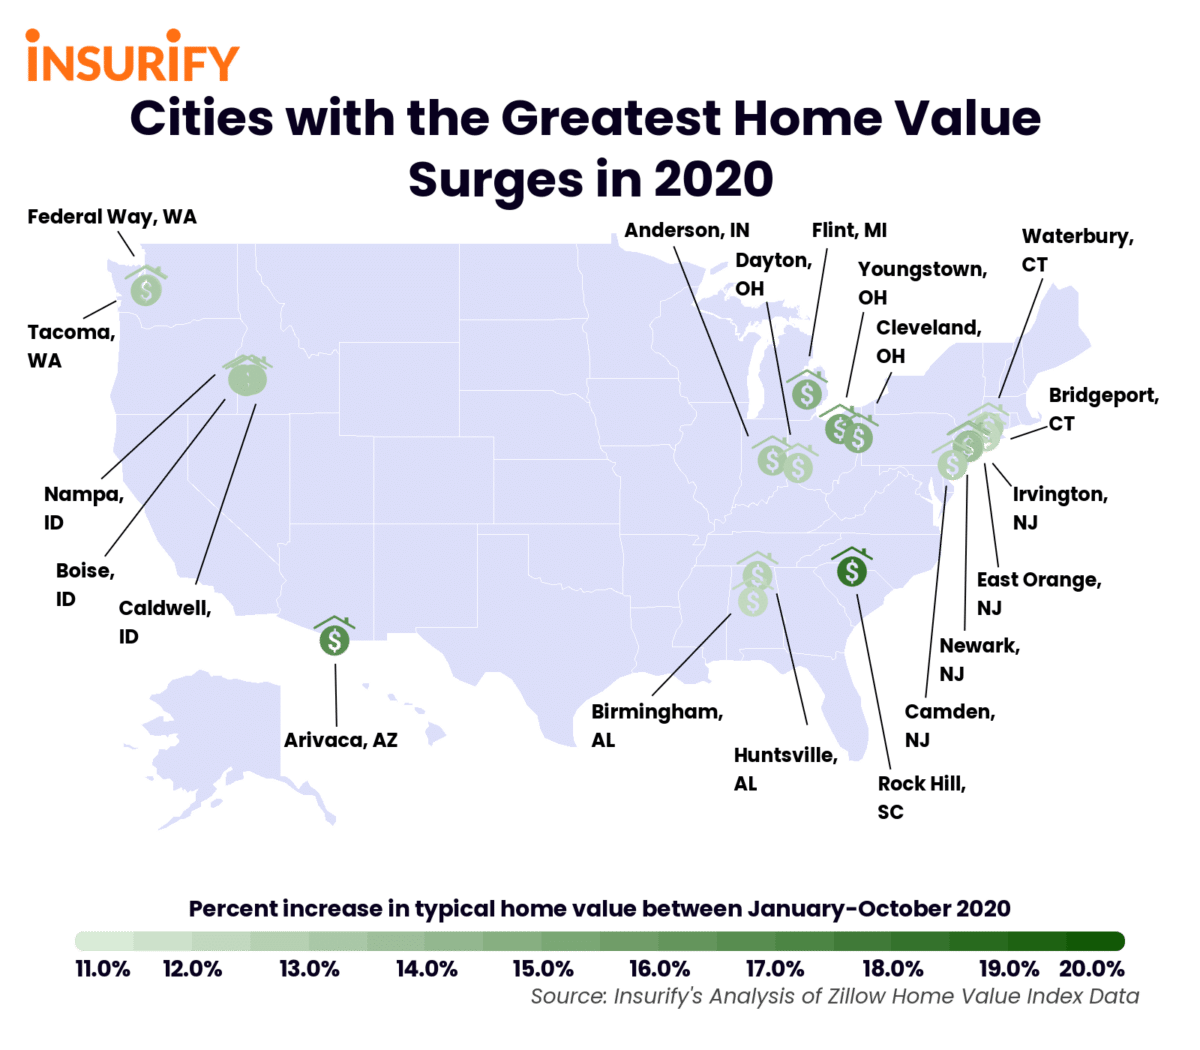 Icon map showing the cities whose home values have increased the most in 2020.